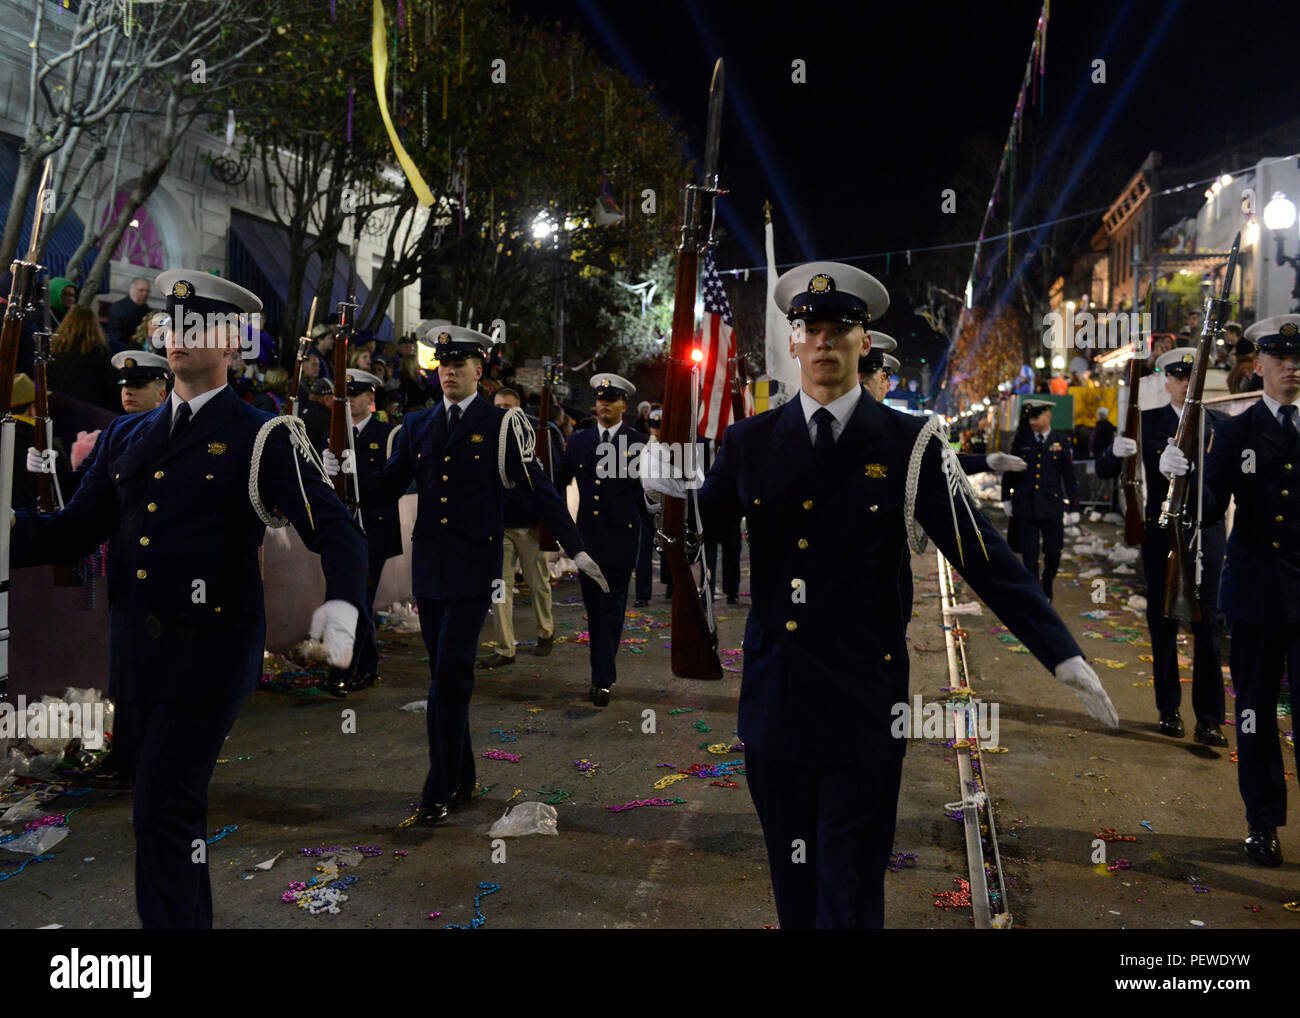 Members of the Coast Guard Ceremonial Honor Guard perform an Order Arms rifle routine while marching down the streets of New Orleans during the 2016 Bacchus Mardi Gras Parade, Feb. 7, 2016. The Coast Guard Ceremonial Honor Guard participates in multiple military events around the country. (U.S. Coast Guard photo by Petty Officer 2nd Class Jonathan Lally) Stock Photo